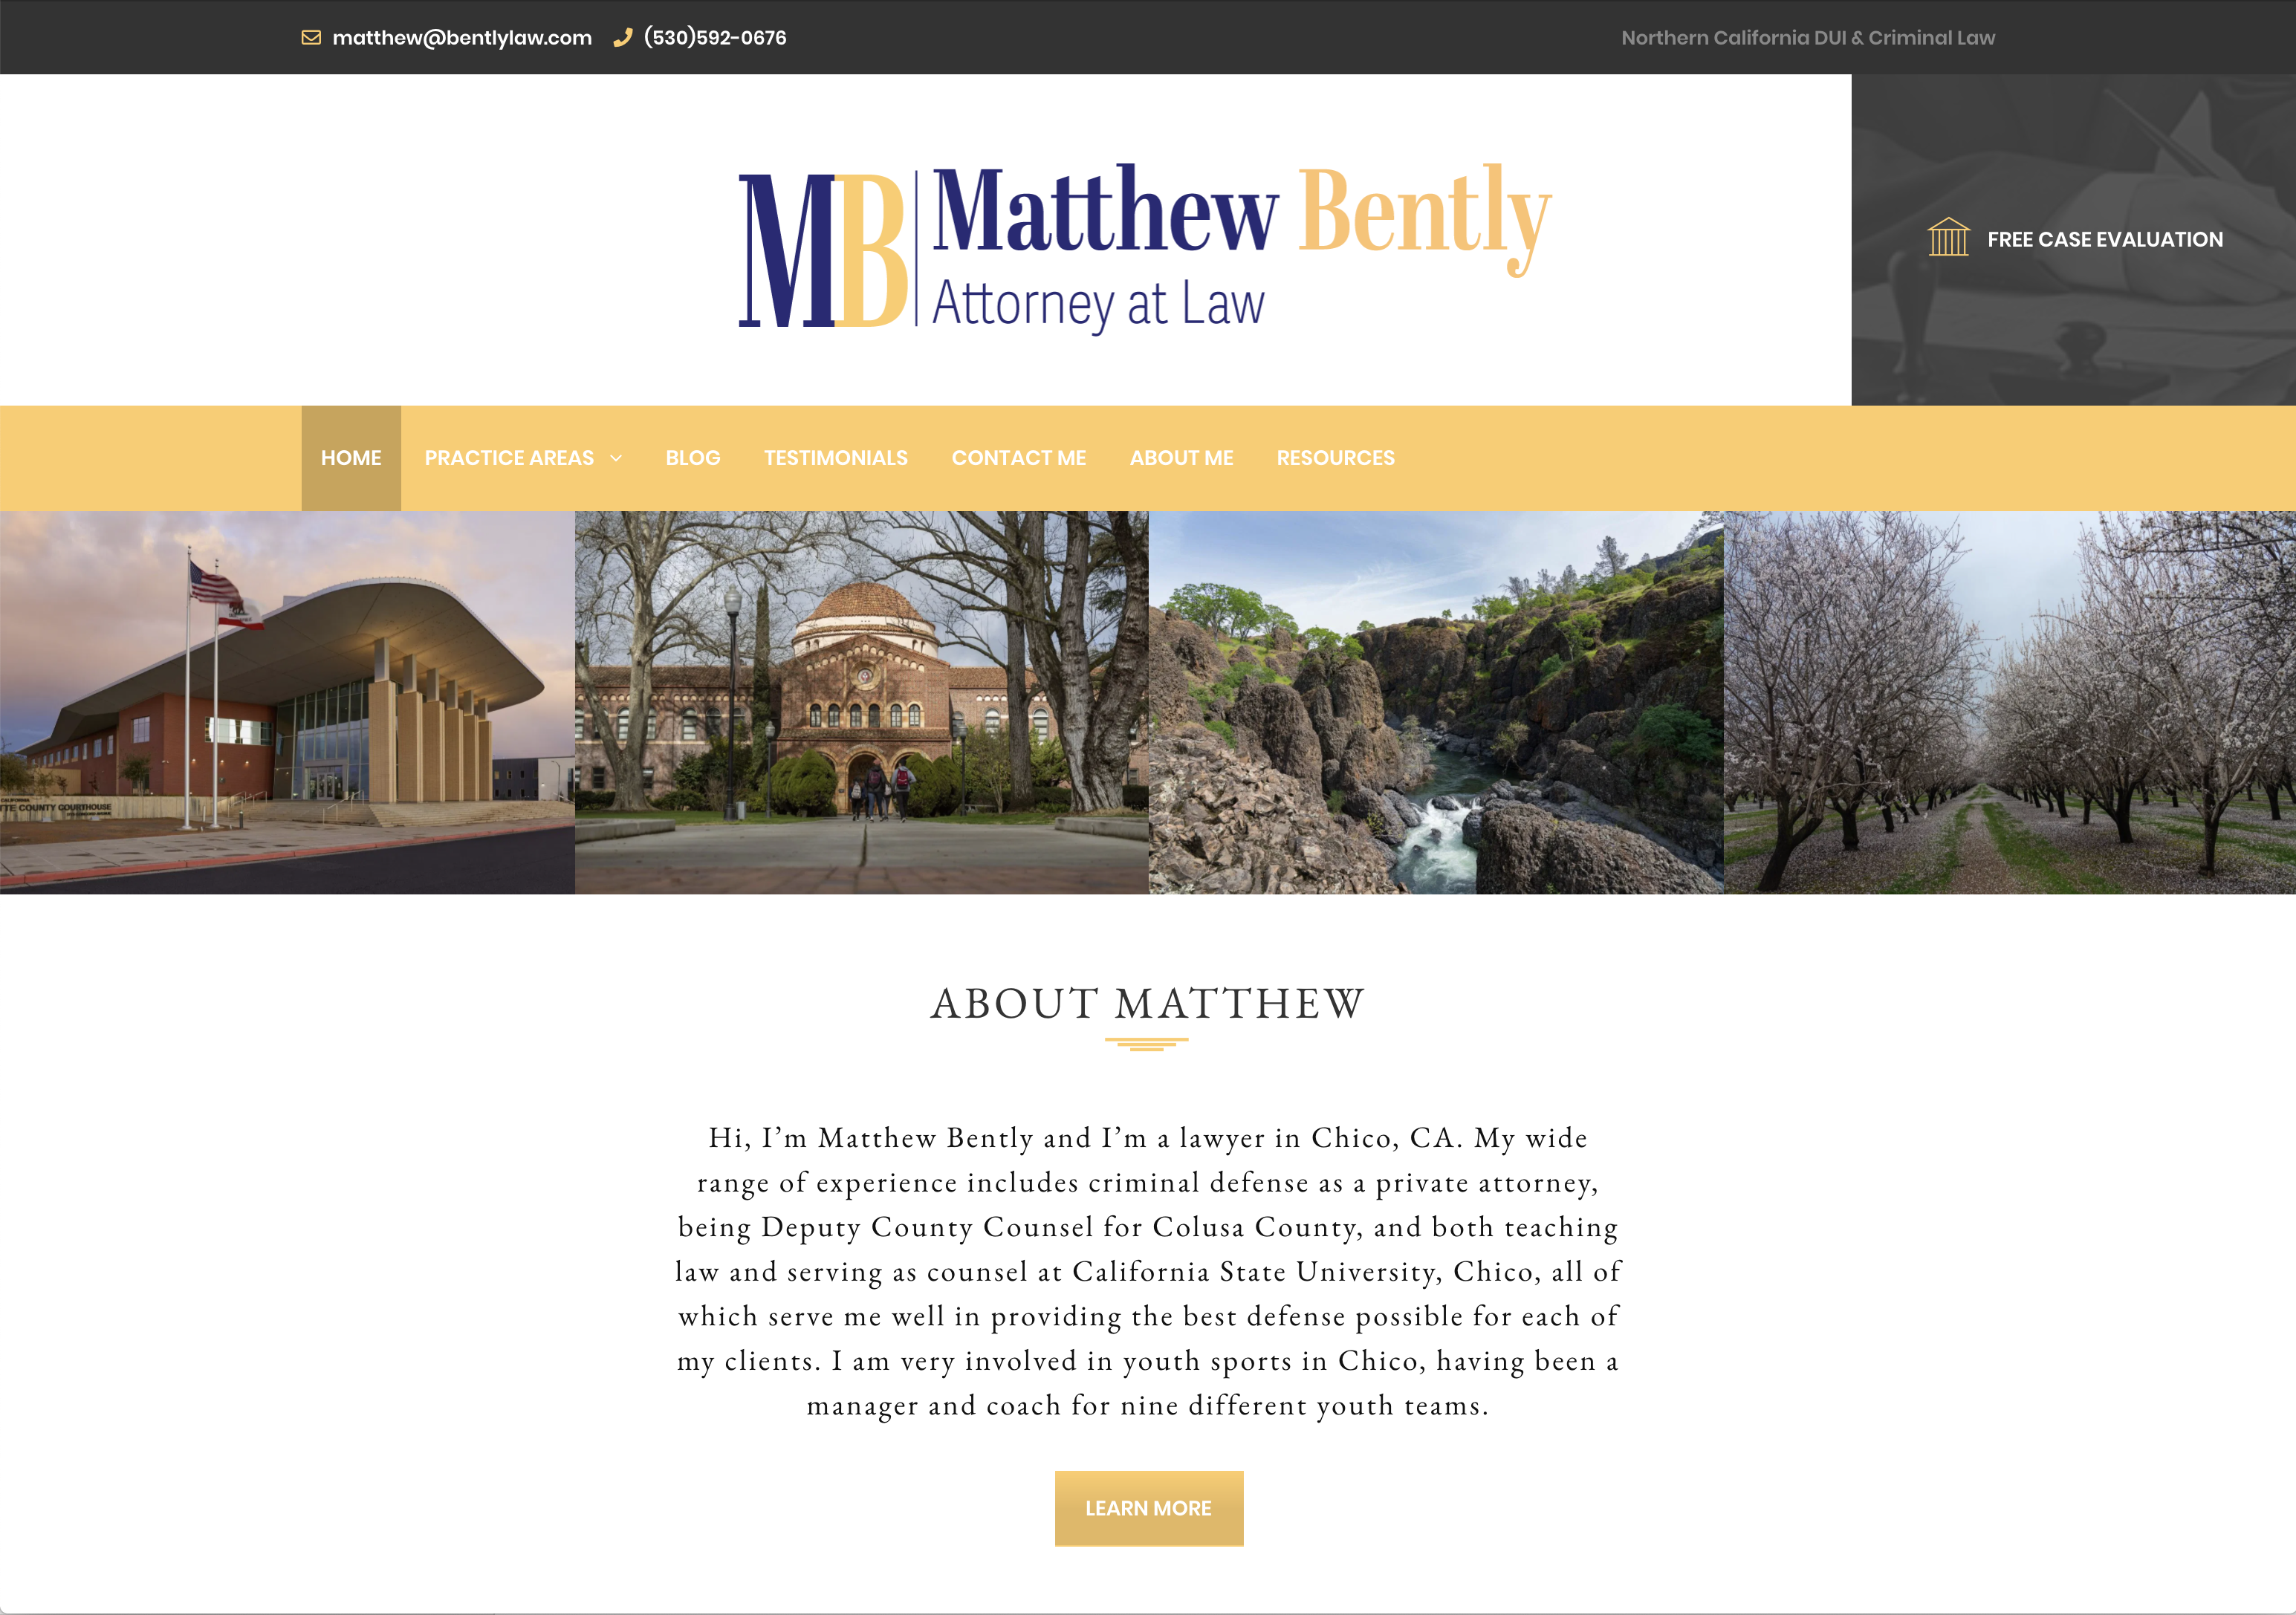 Attorney website designed by Solo Creative Services - Website Design & Photography Based in Chico, CA